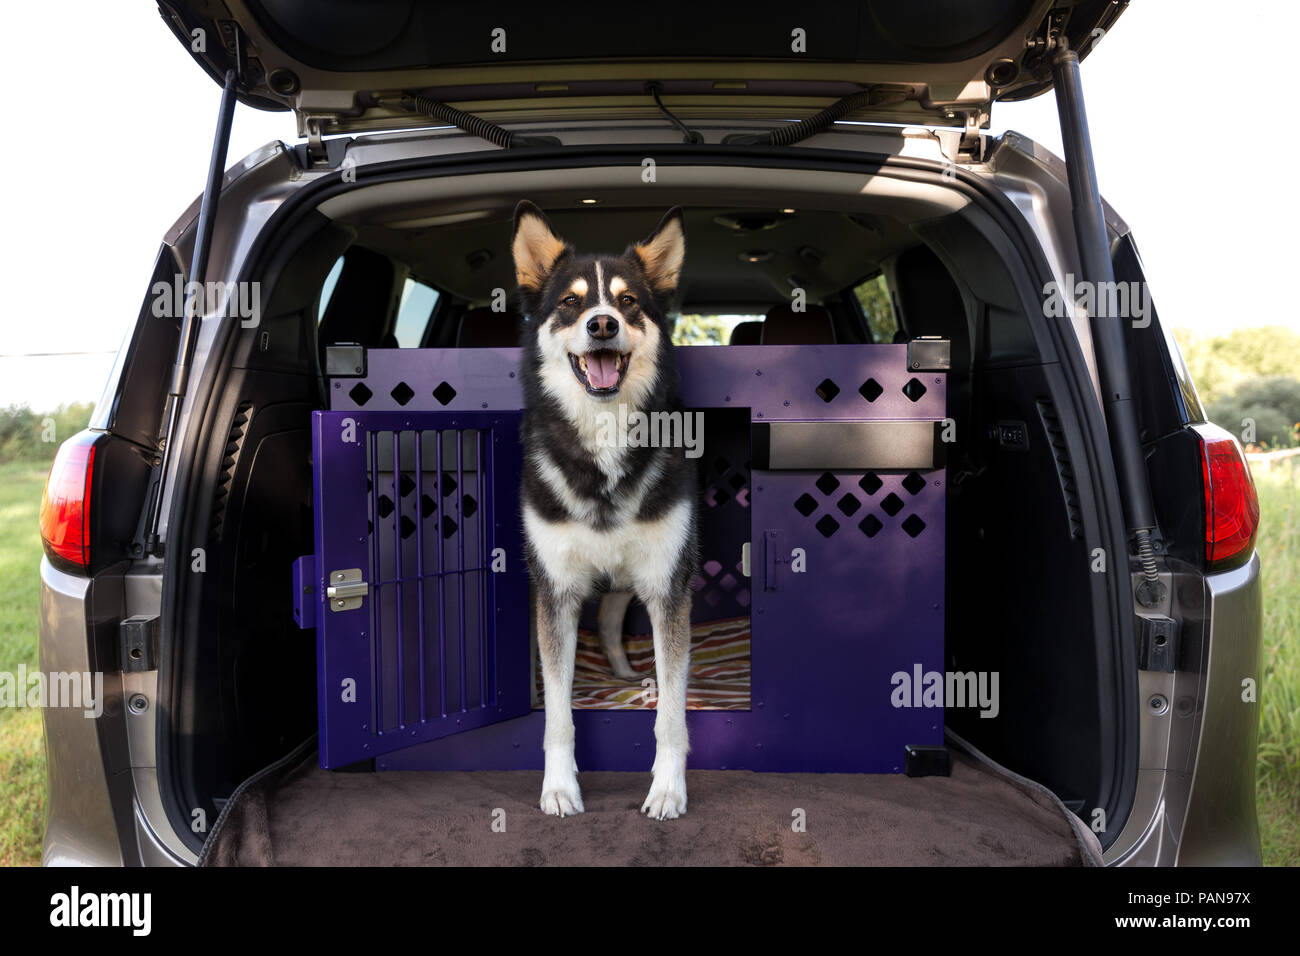 full body shot of husky mix standing inside a crate inside of a hatchback - Stock Image